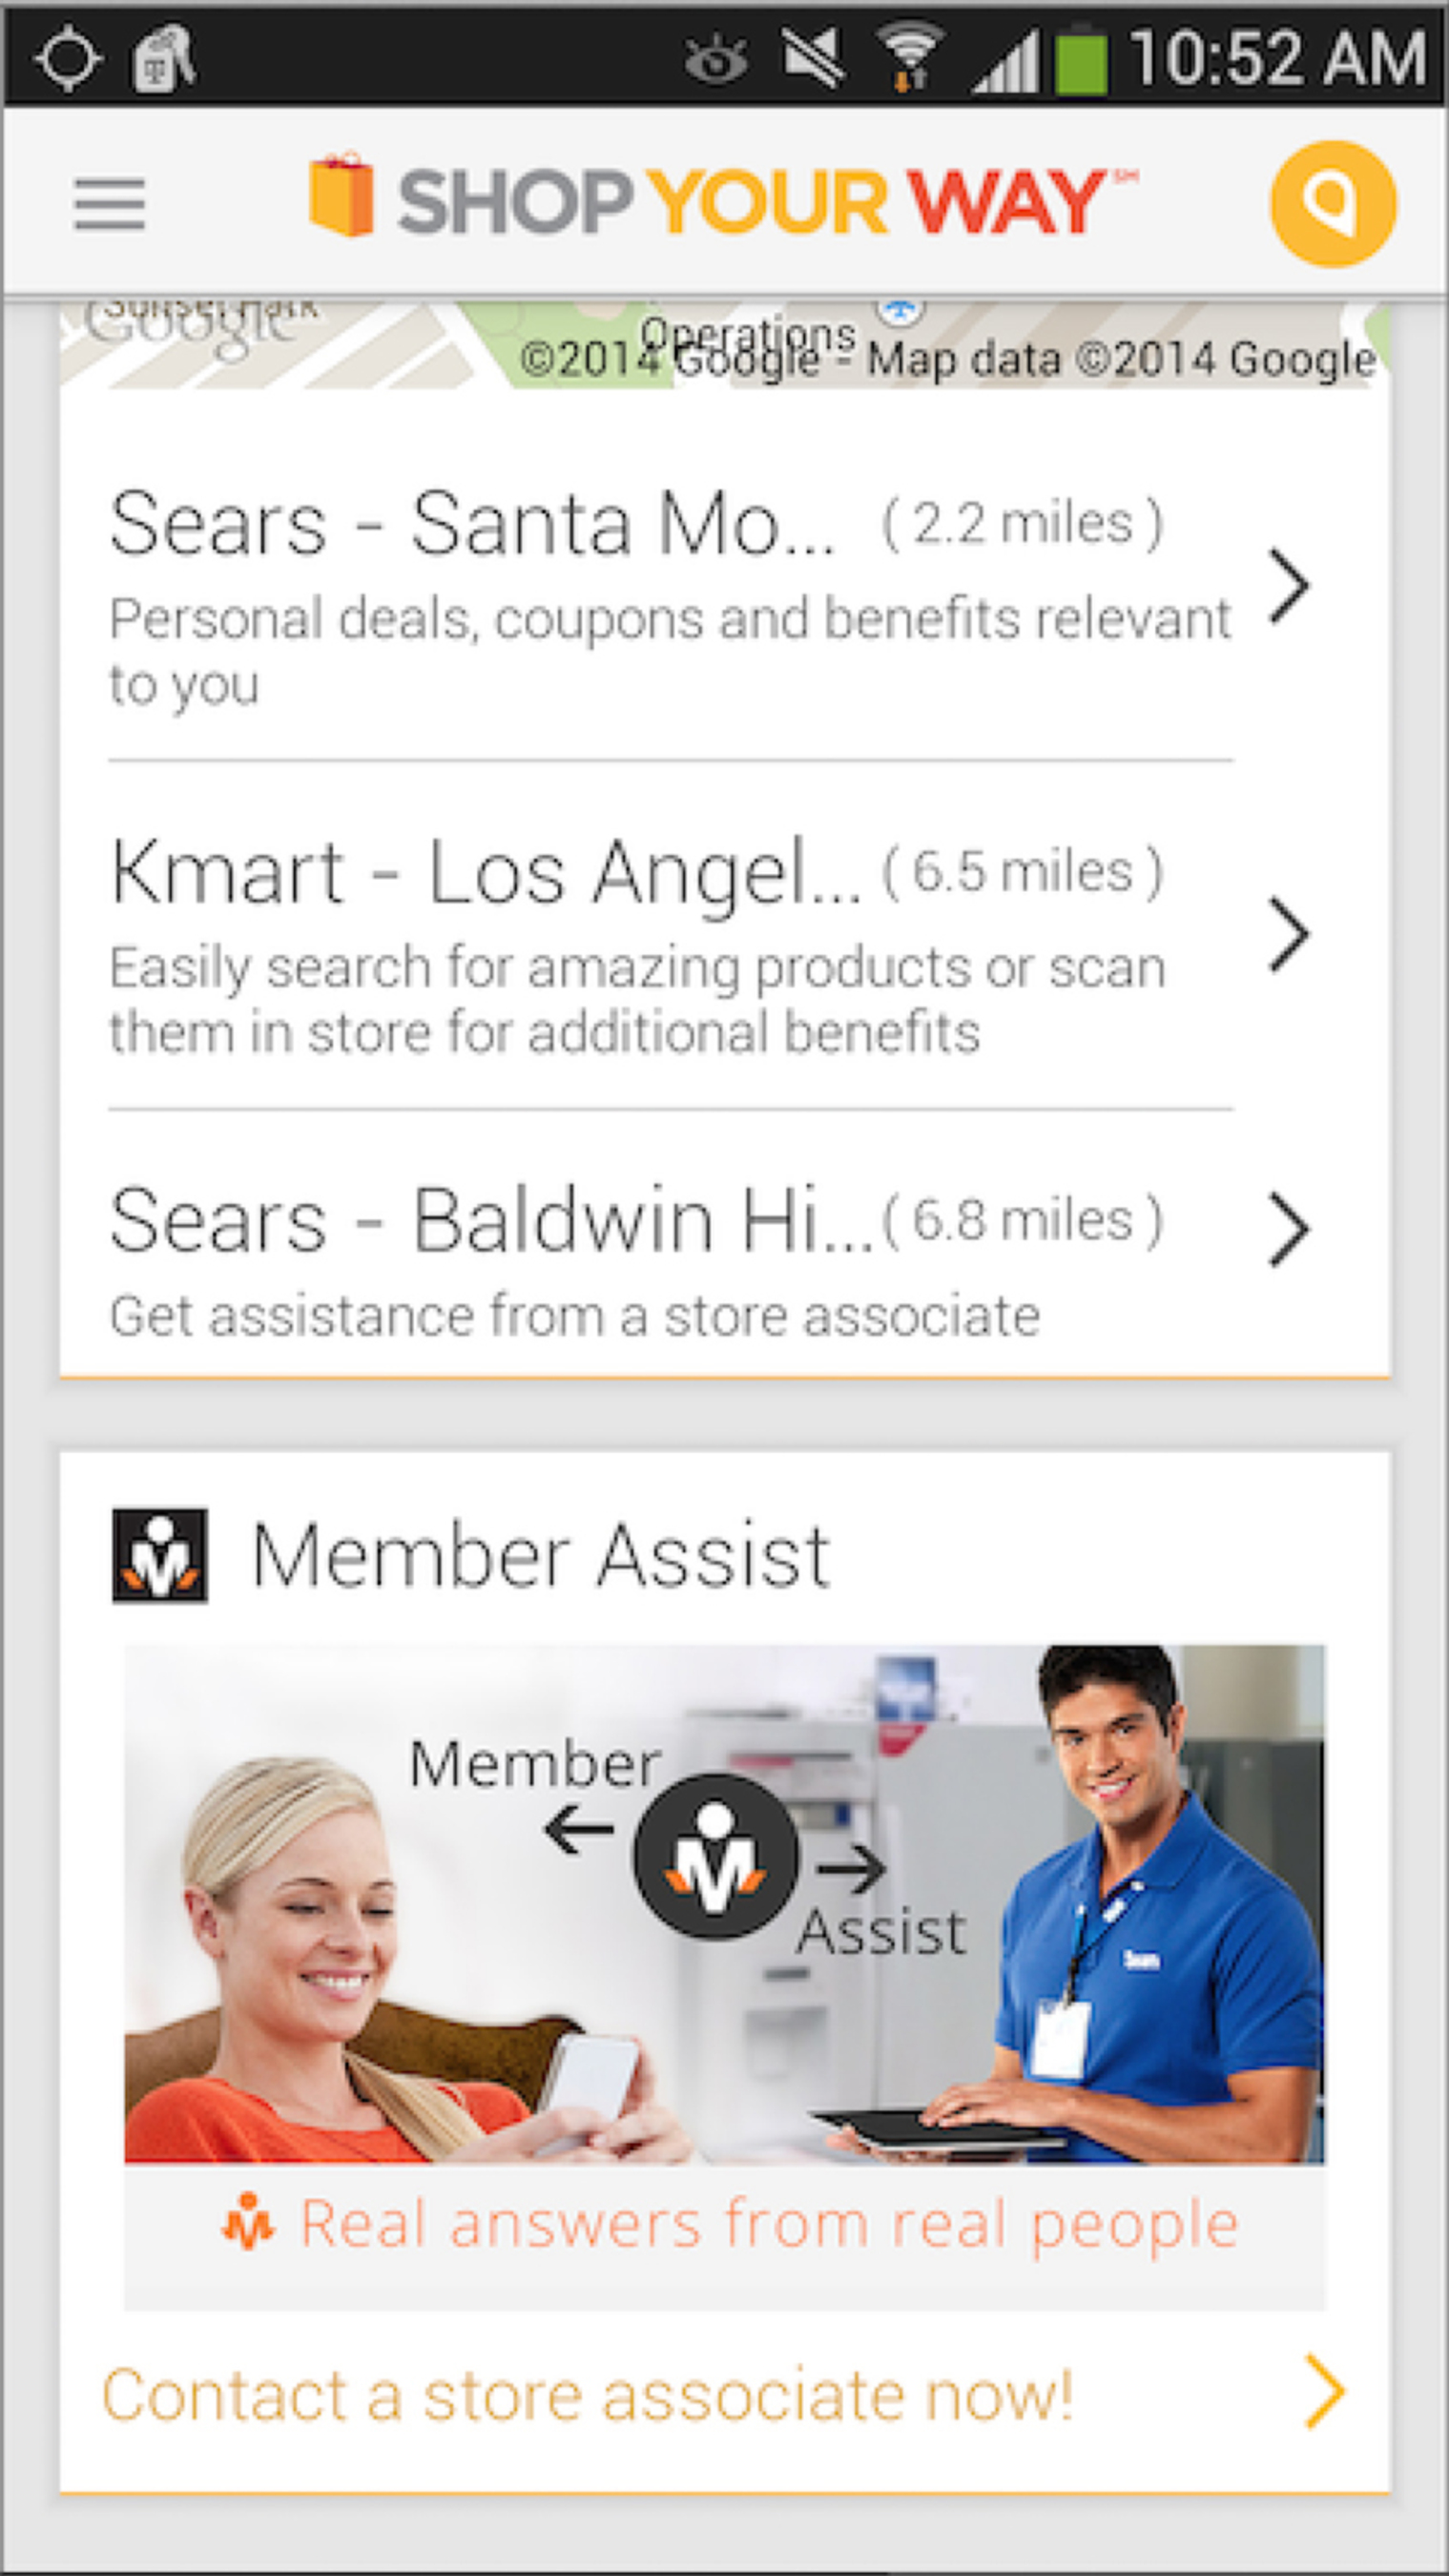 Sears(R) Member Assist tool leverages the online and mobile channels that members use to easily tap into the expertise of Sears' nationwide team of knowledgeable store associates, as well as members of the Shop Your Way community, to get advice on products and services important to them. (PRNewsFoto/ Sears Holdings Corporation )